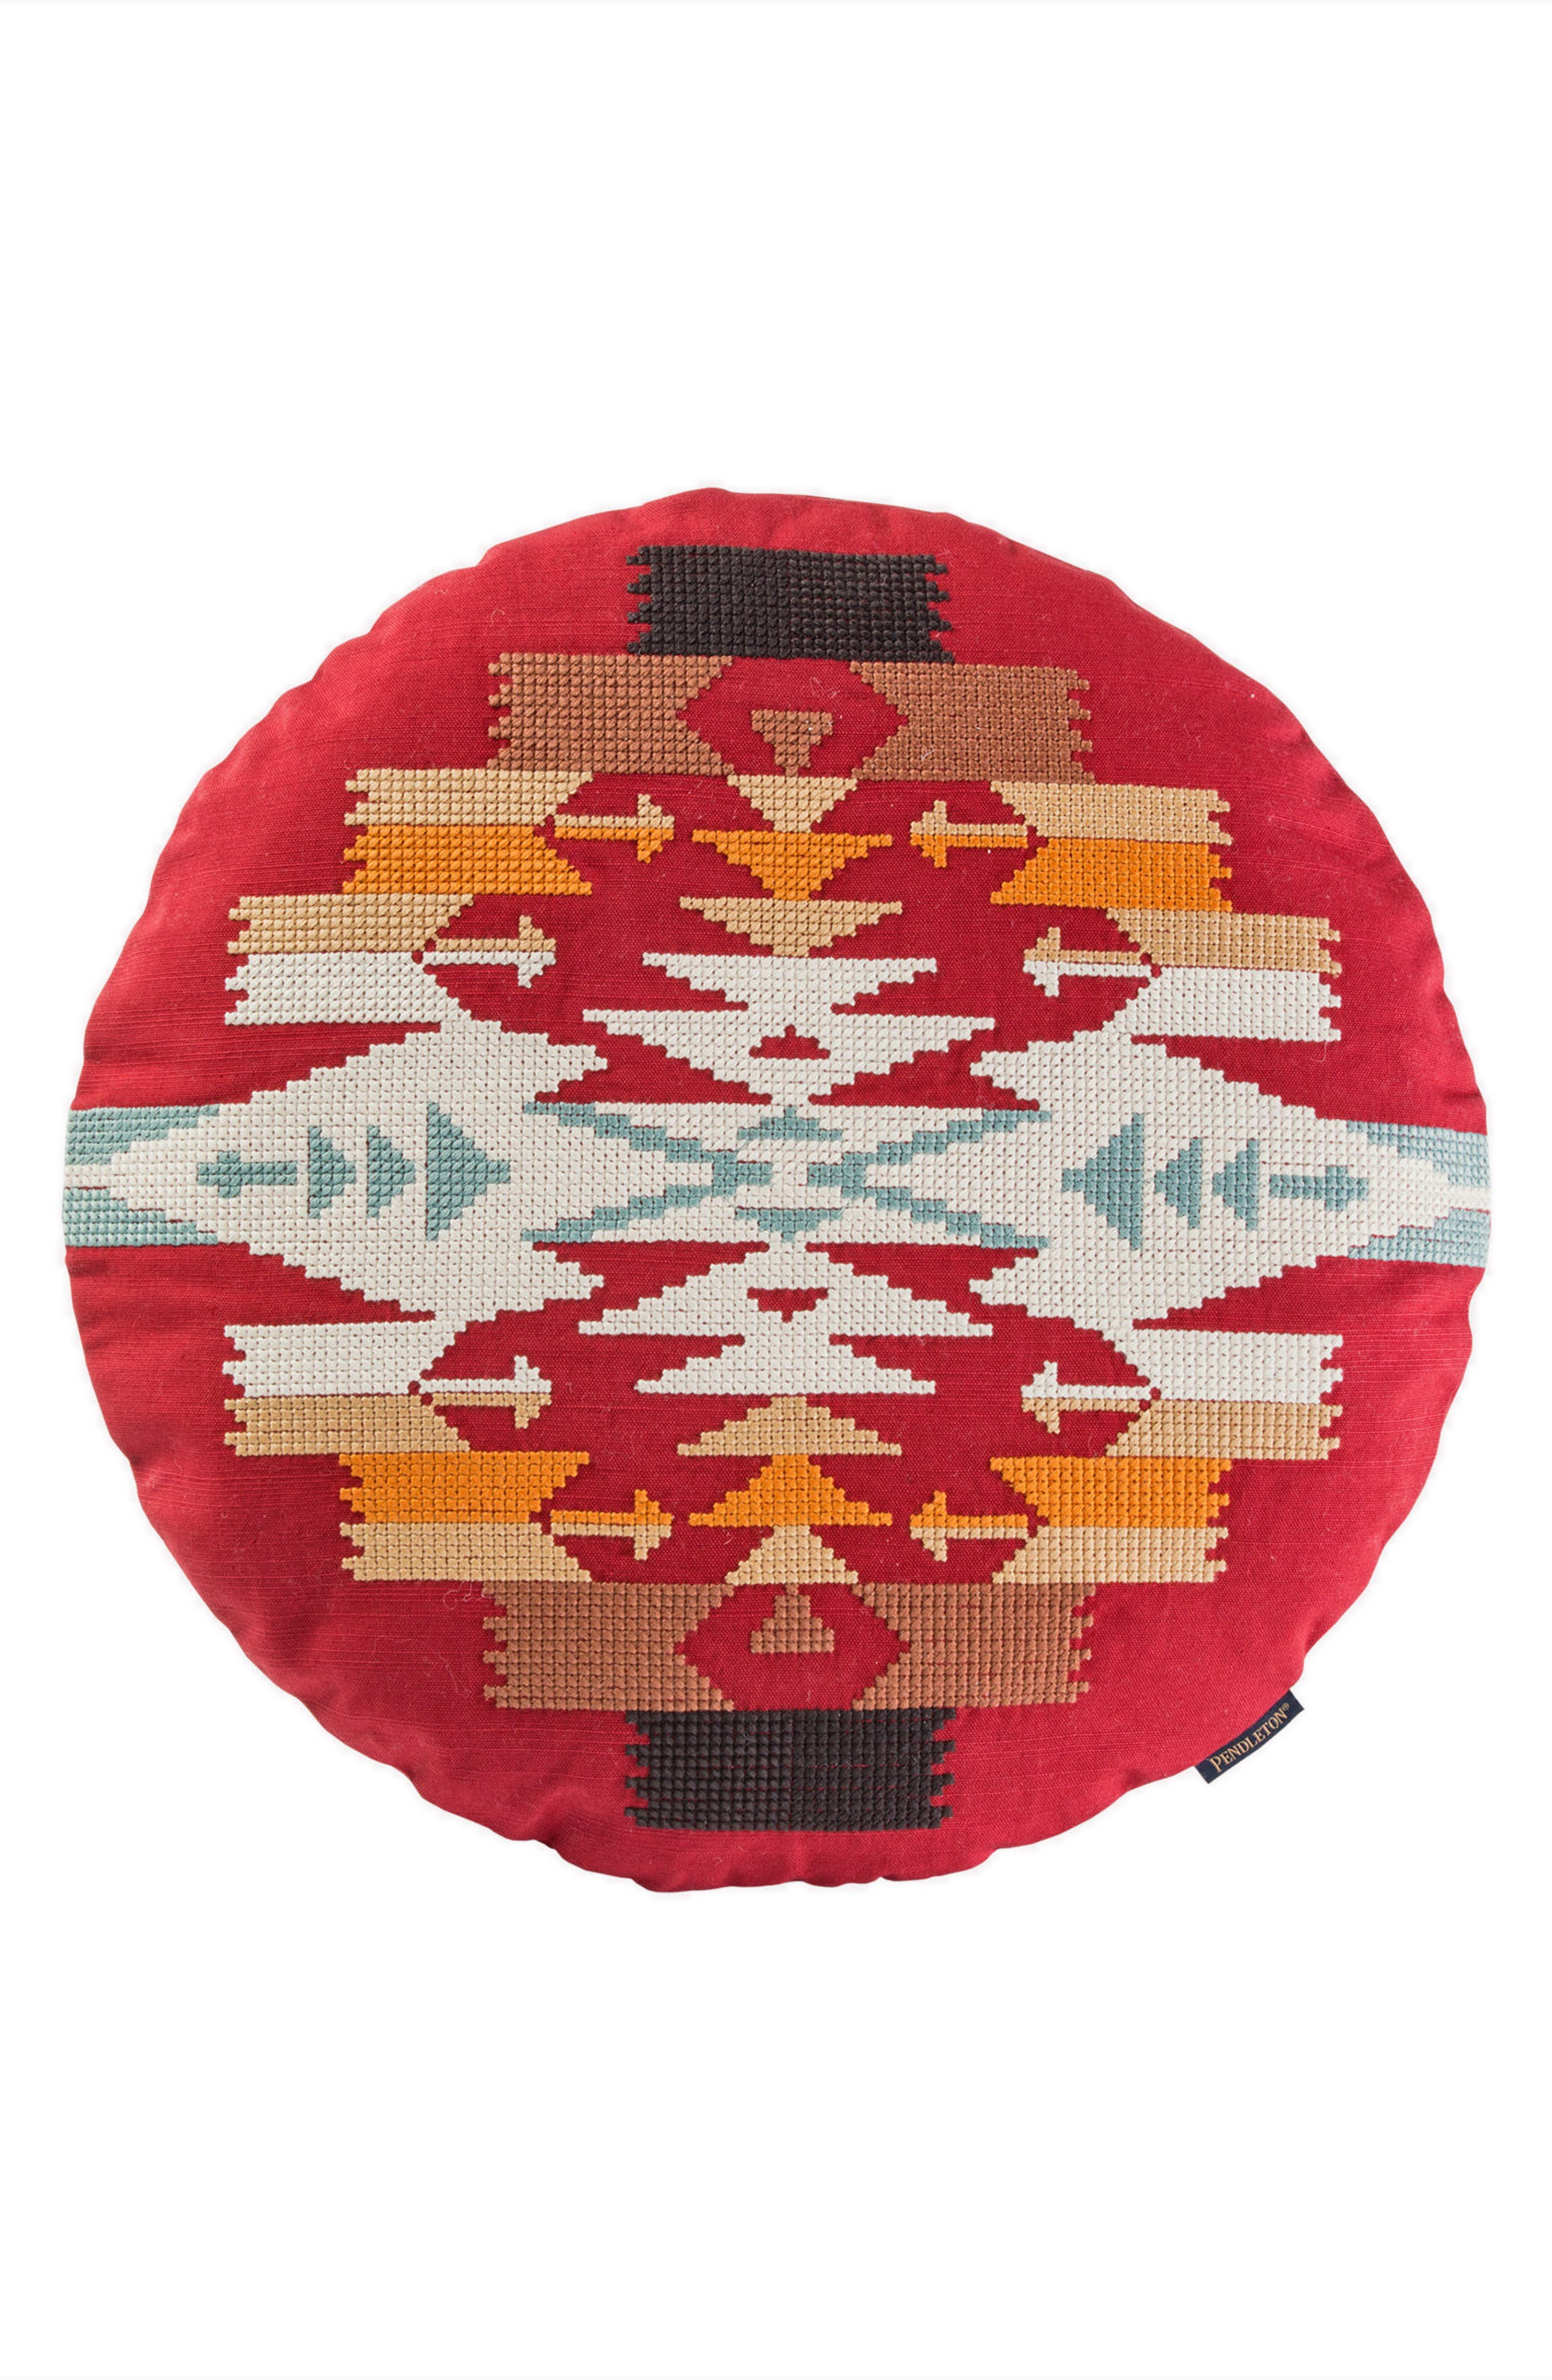 Tucson Saddle Exploded Cross Stitch Pillow,                         Main,                         color, Scarlet